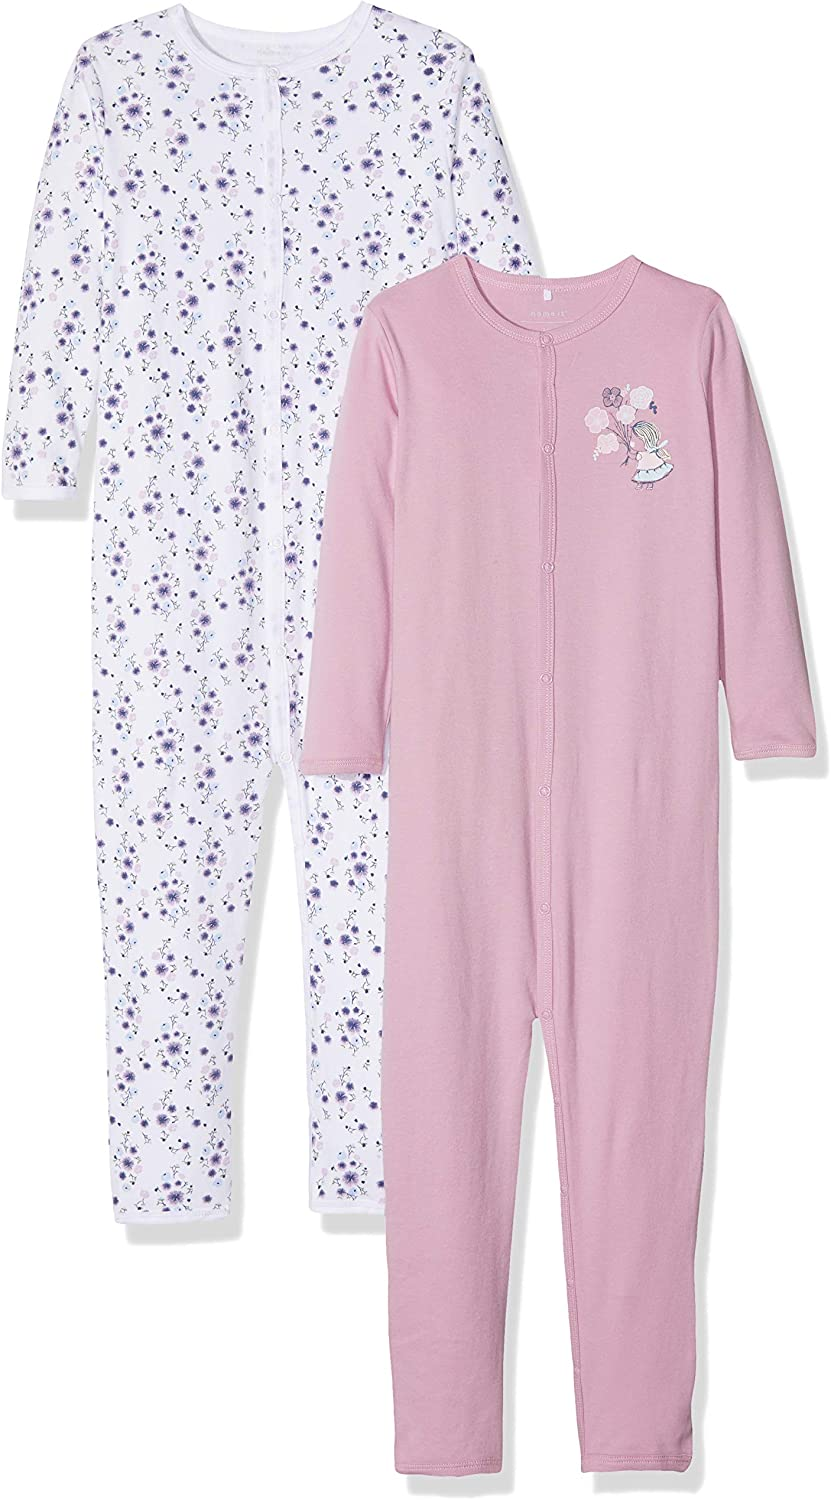 Pack of 2 Name It Baby Girls Sleepsuit